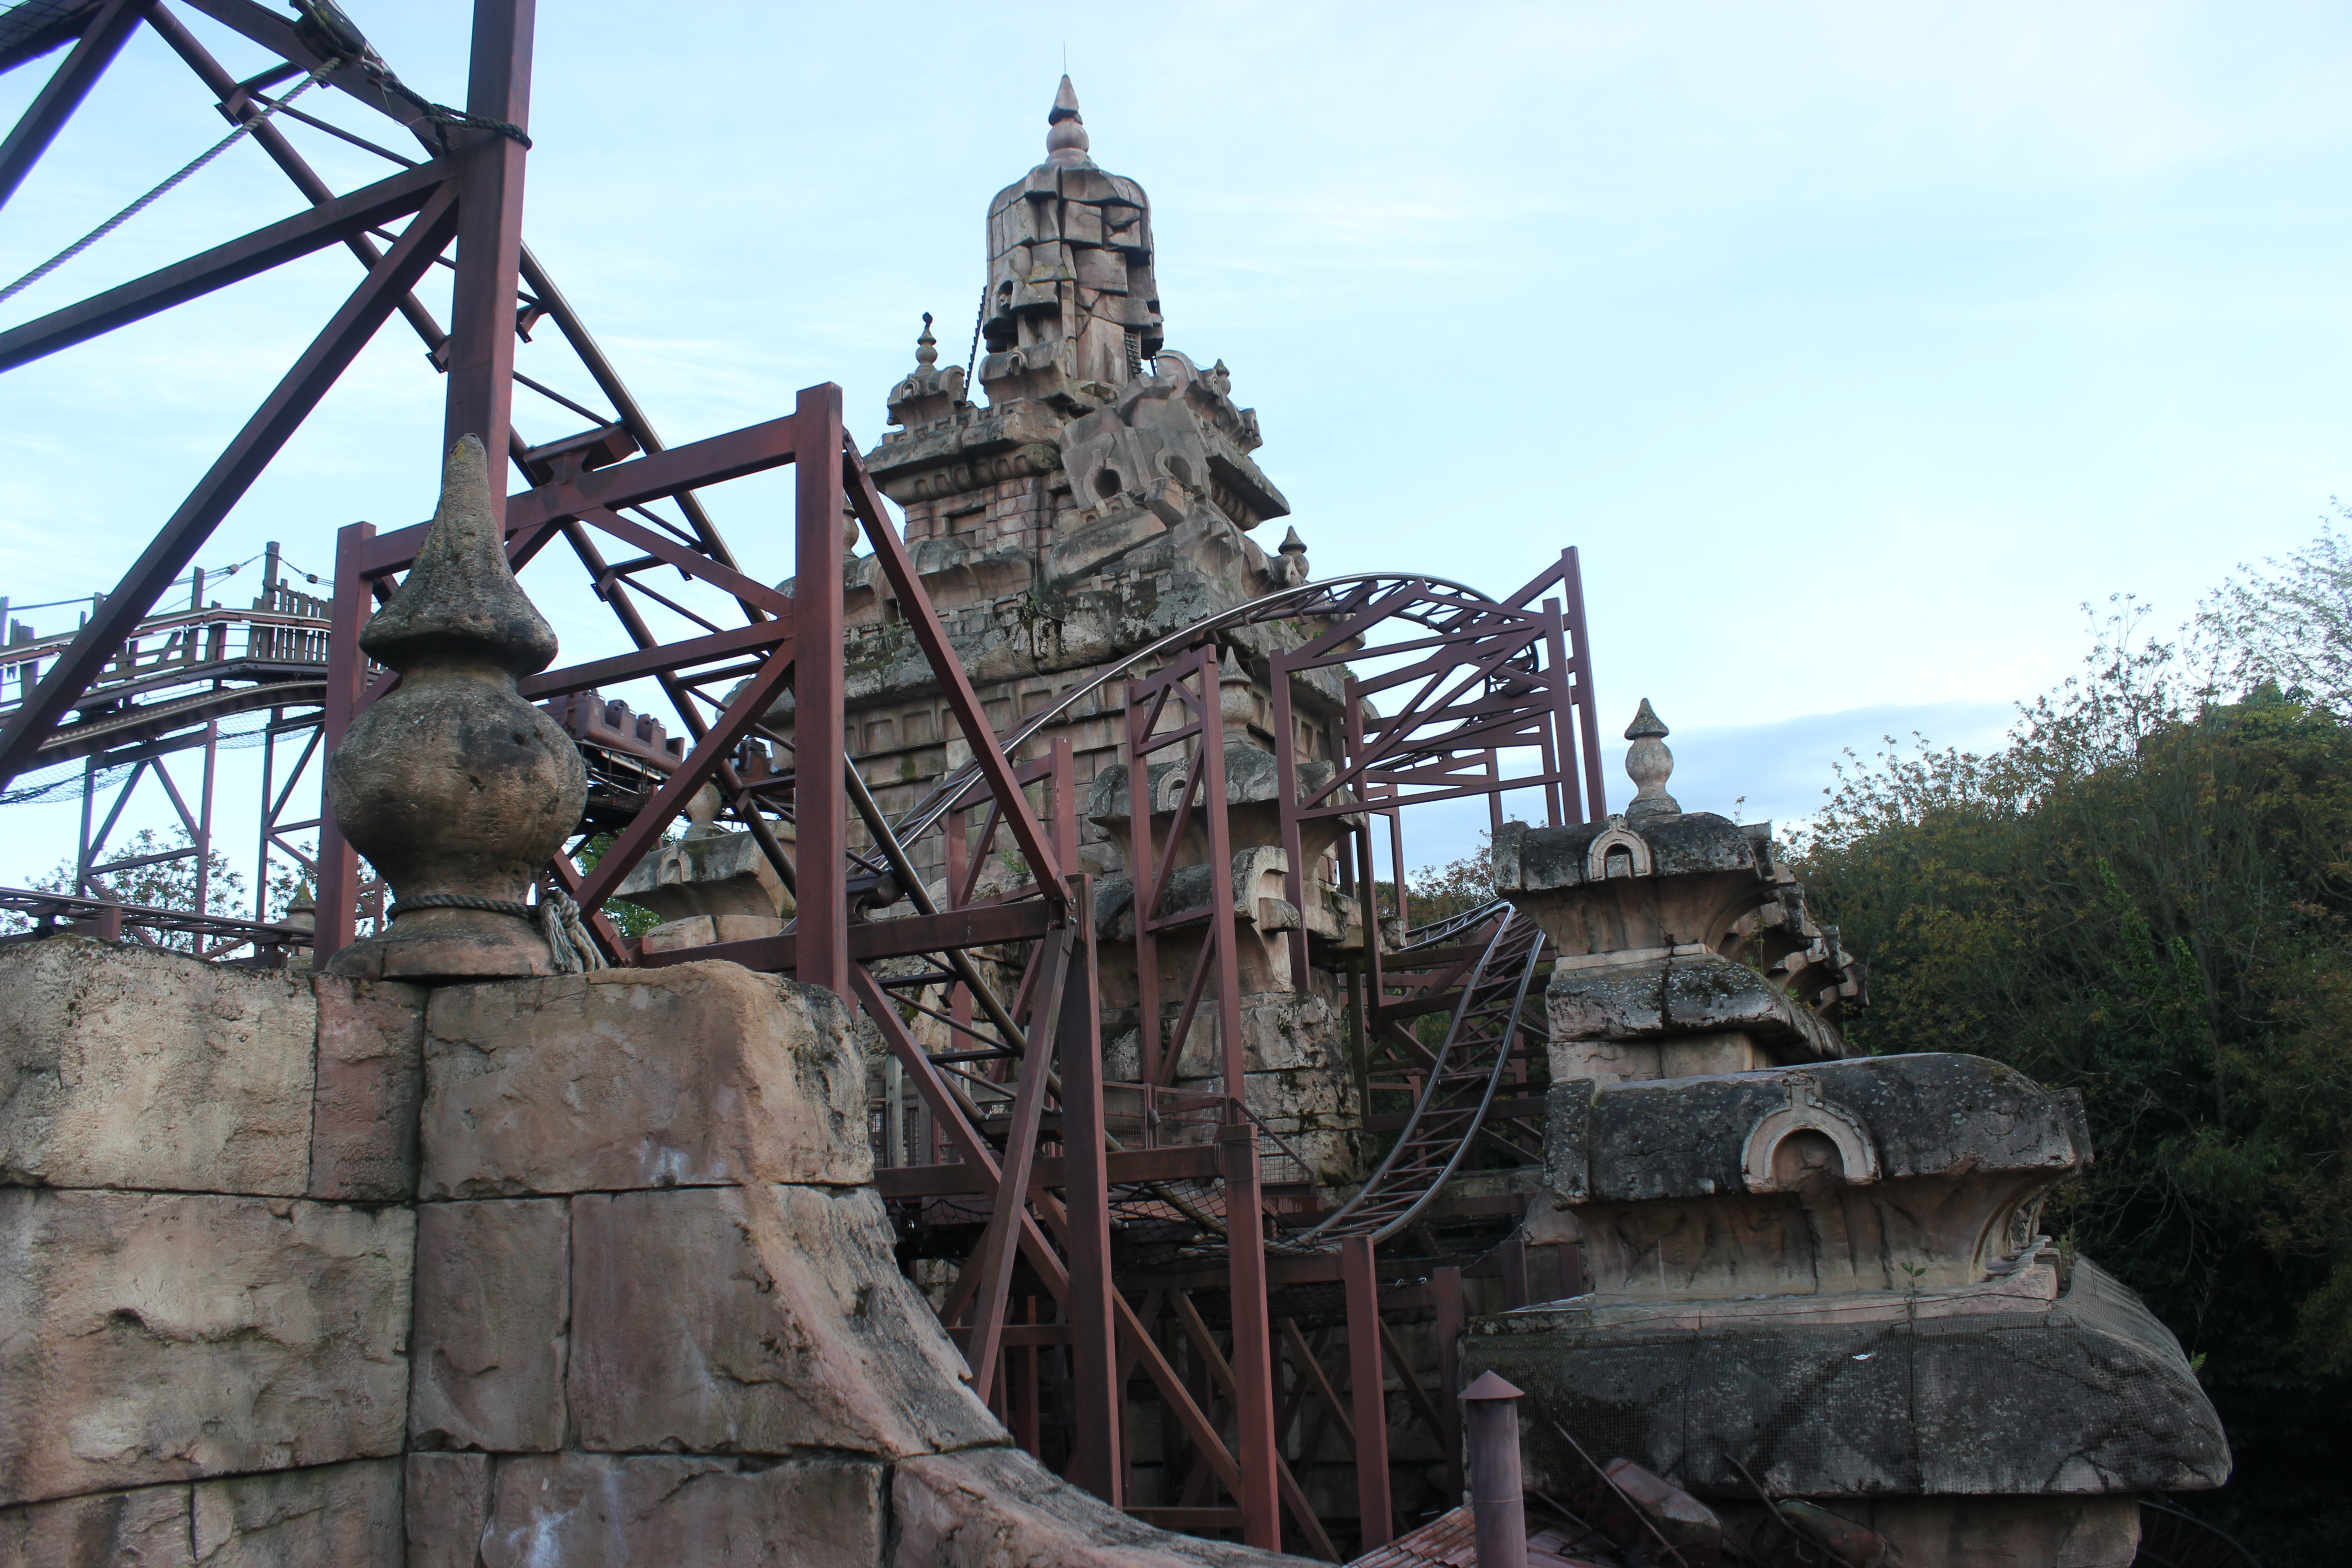 Indiana Jones and the Temple of Peril attraction